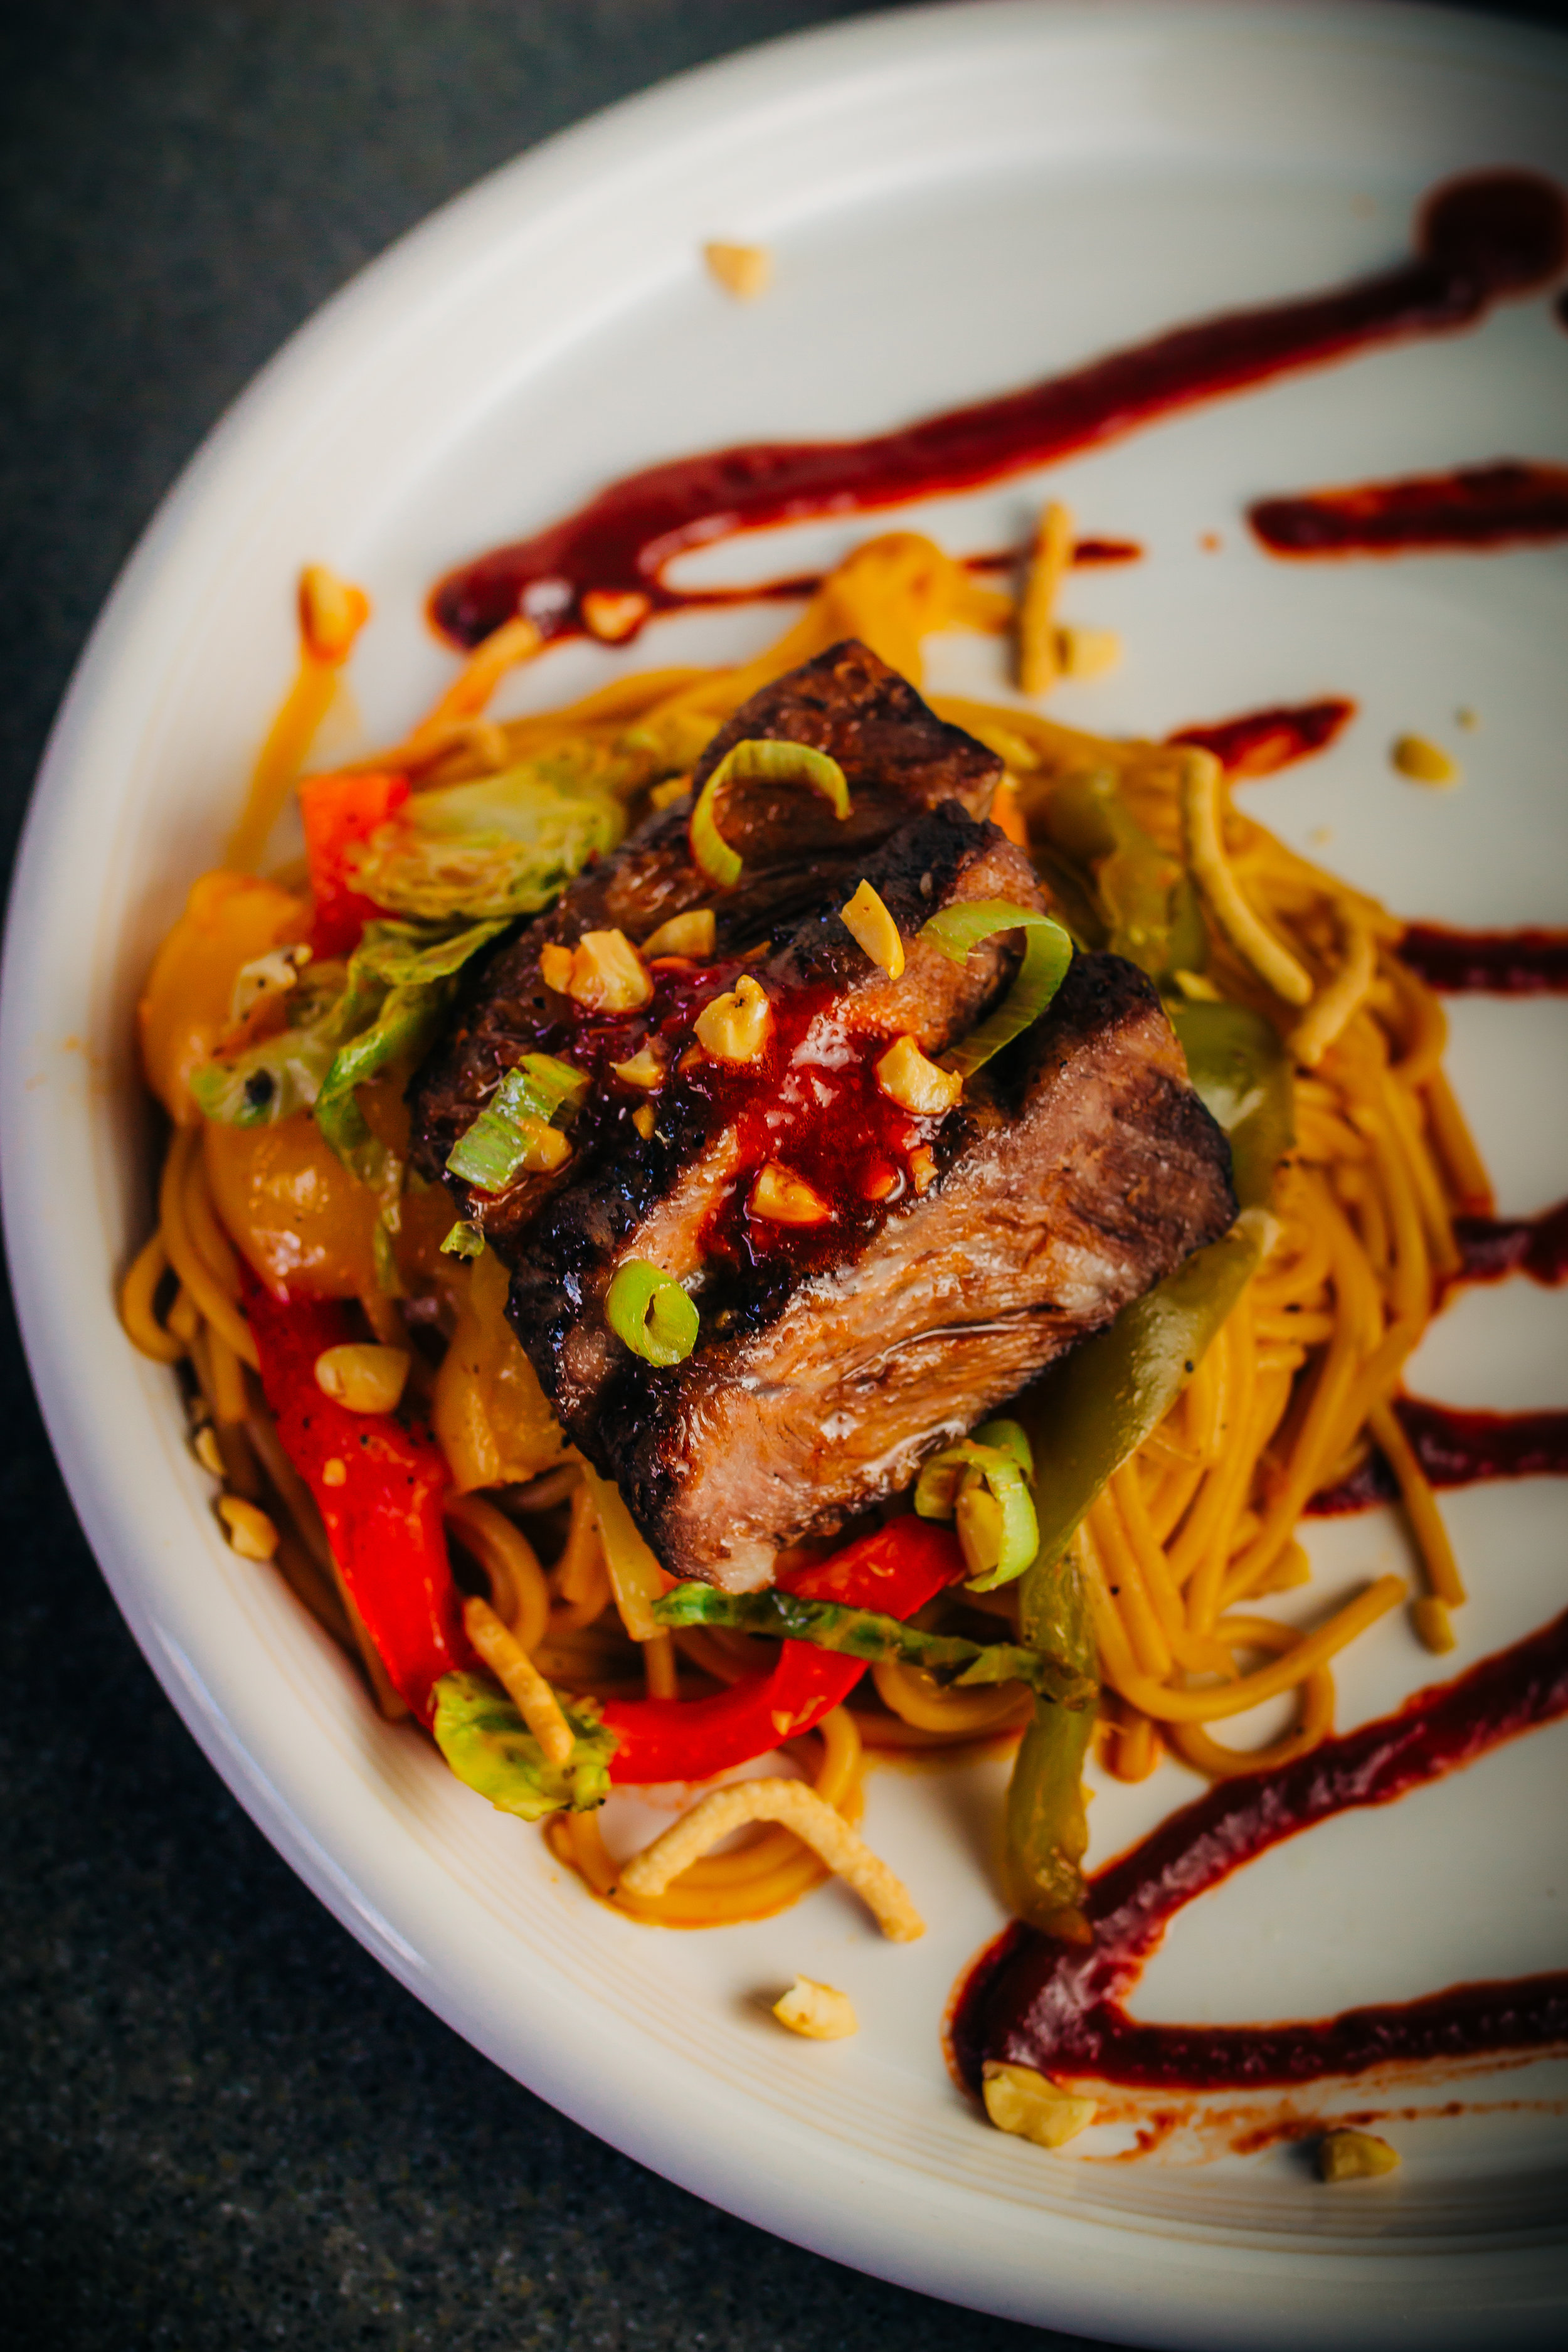 So instead of doing that, I wanted to mimic one of their best dishes - Chili Garlic Chow Mein.